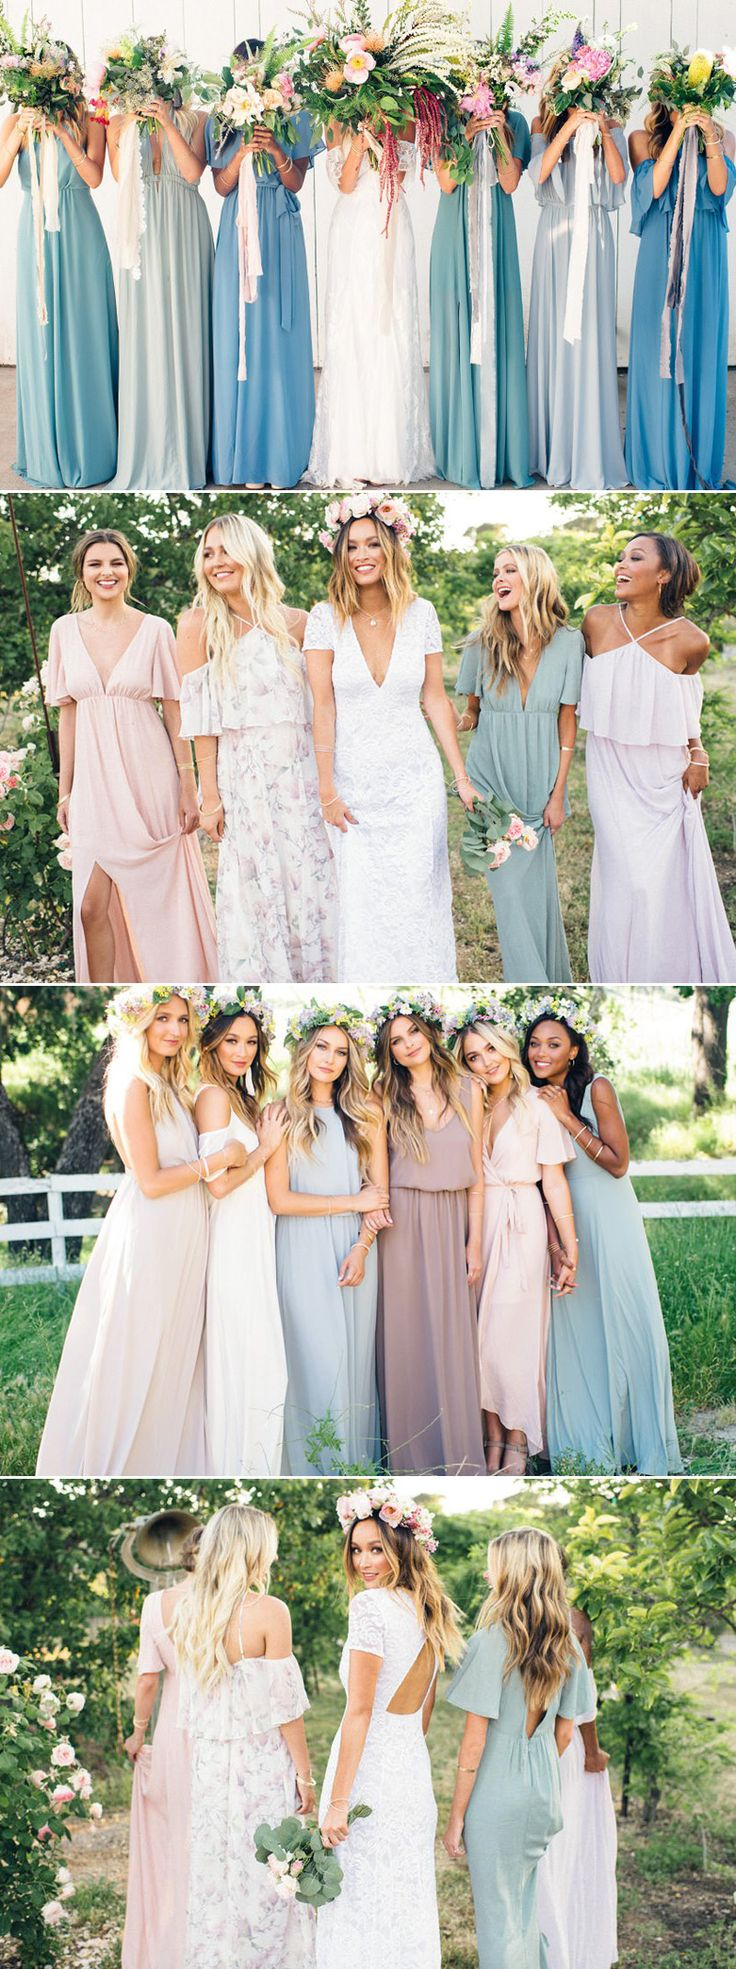 We are so excited to introduce you to the new 2017 summer bridal collection by Show Me Your Mumu.  Filled with gorgeous prints, color living looks, heavenly whites, and boho-chic silhouettes, this collection is designed to work with pretty much any wedding style. Join us as we share some of our favorite picks below, and …